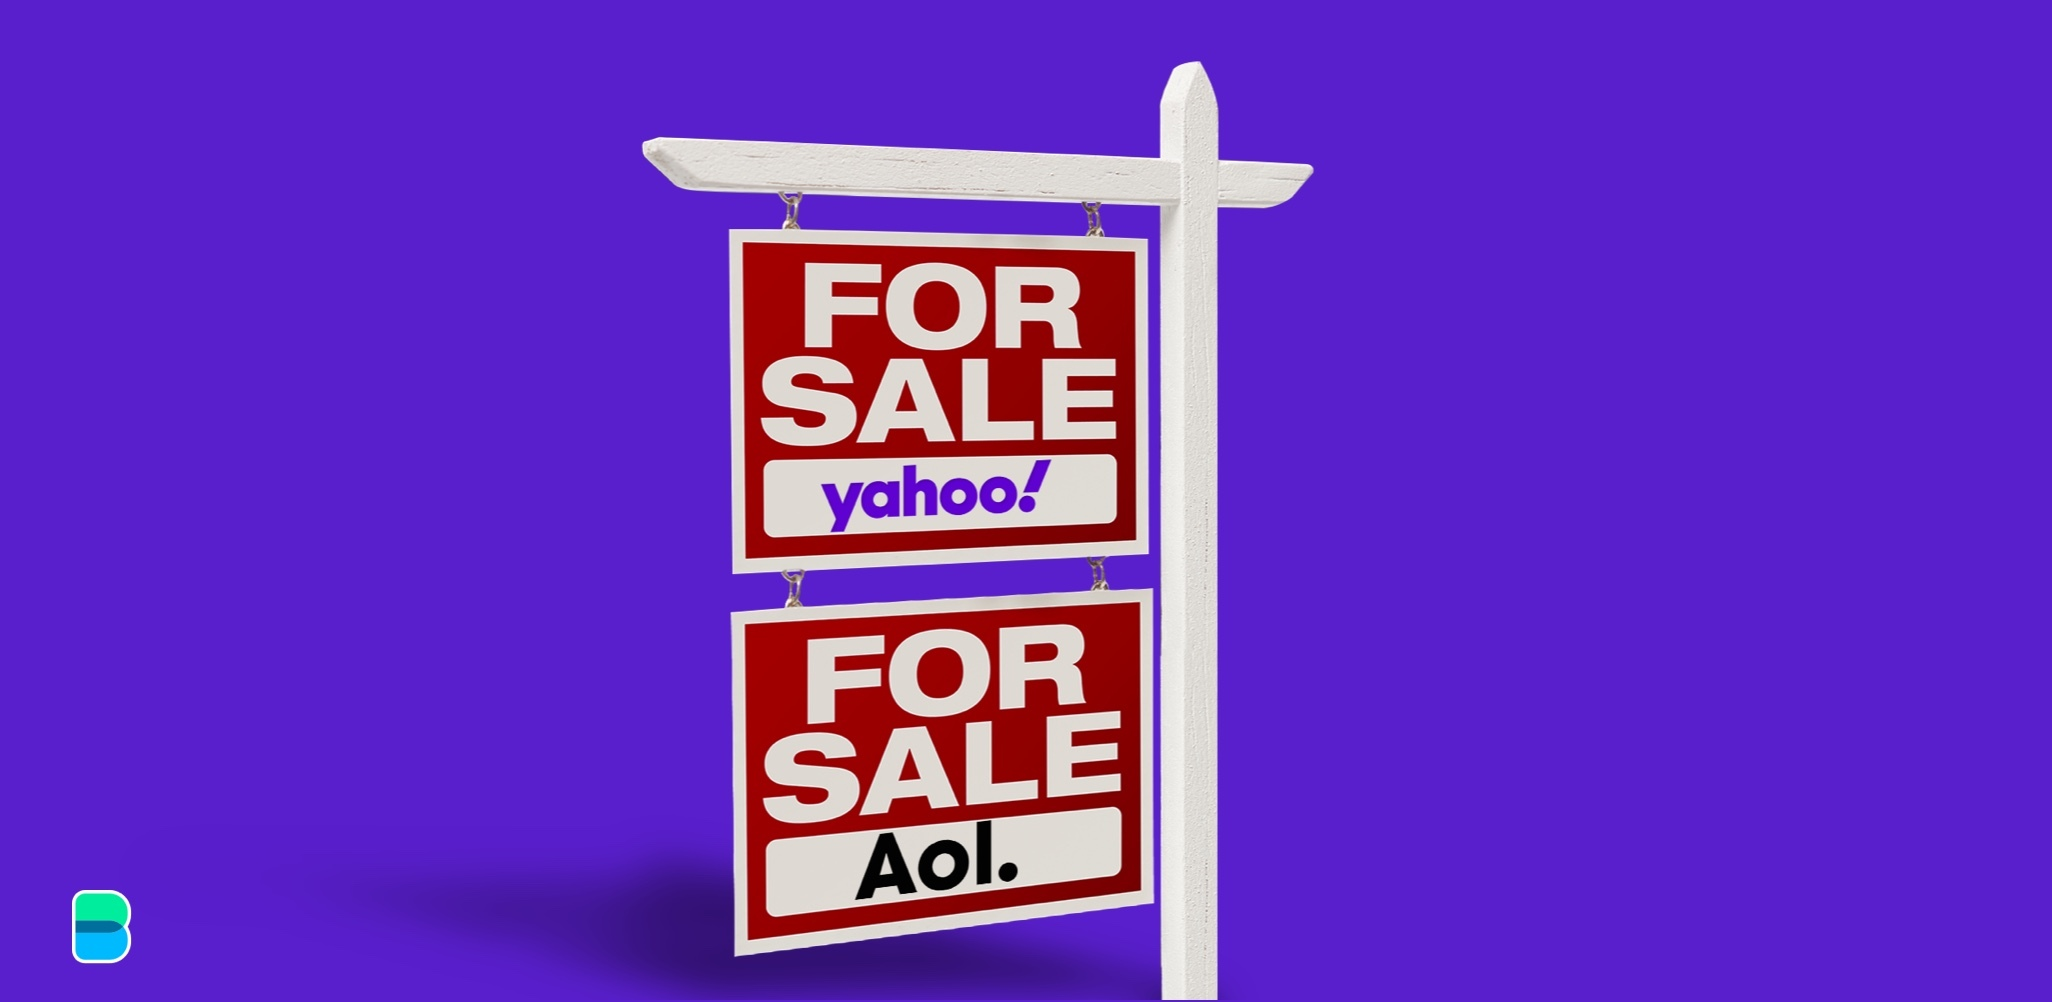 AOL and Yahoo are still around?!